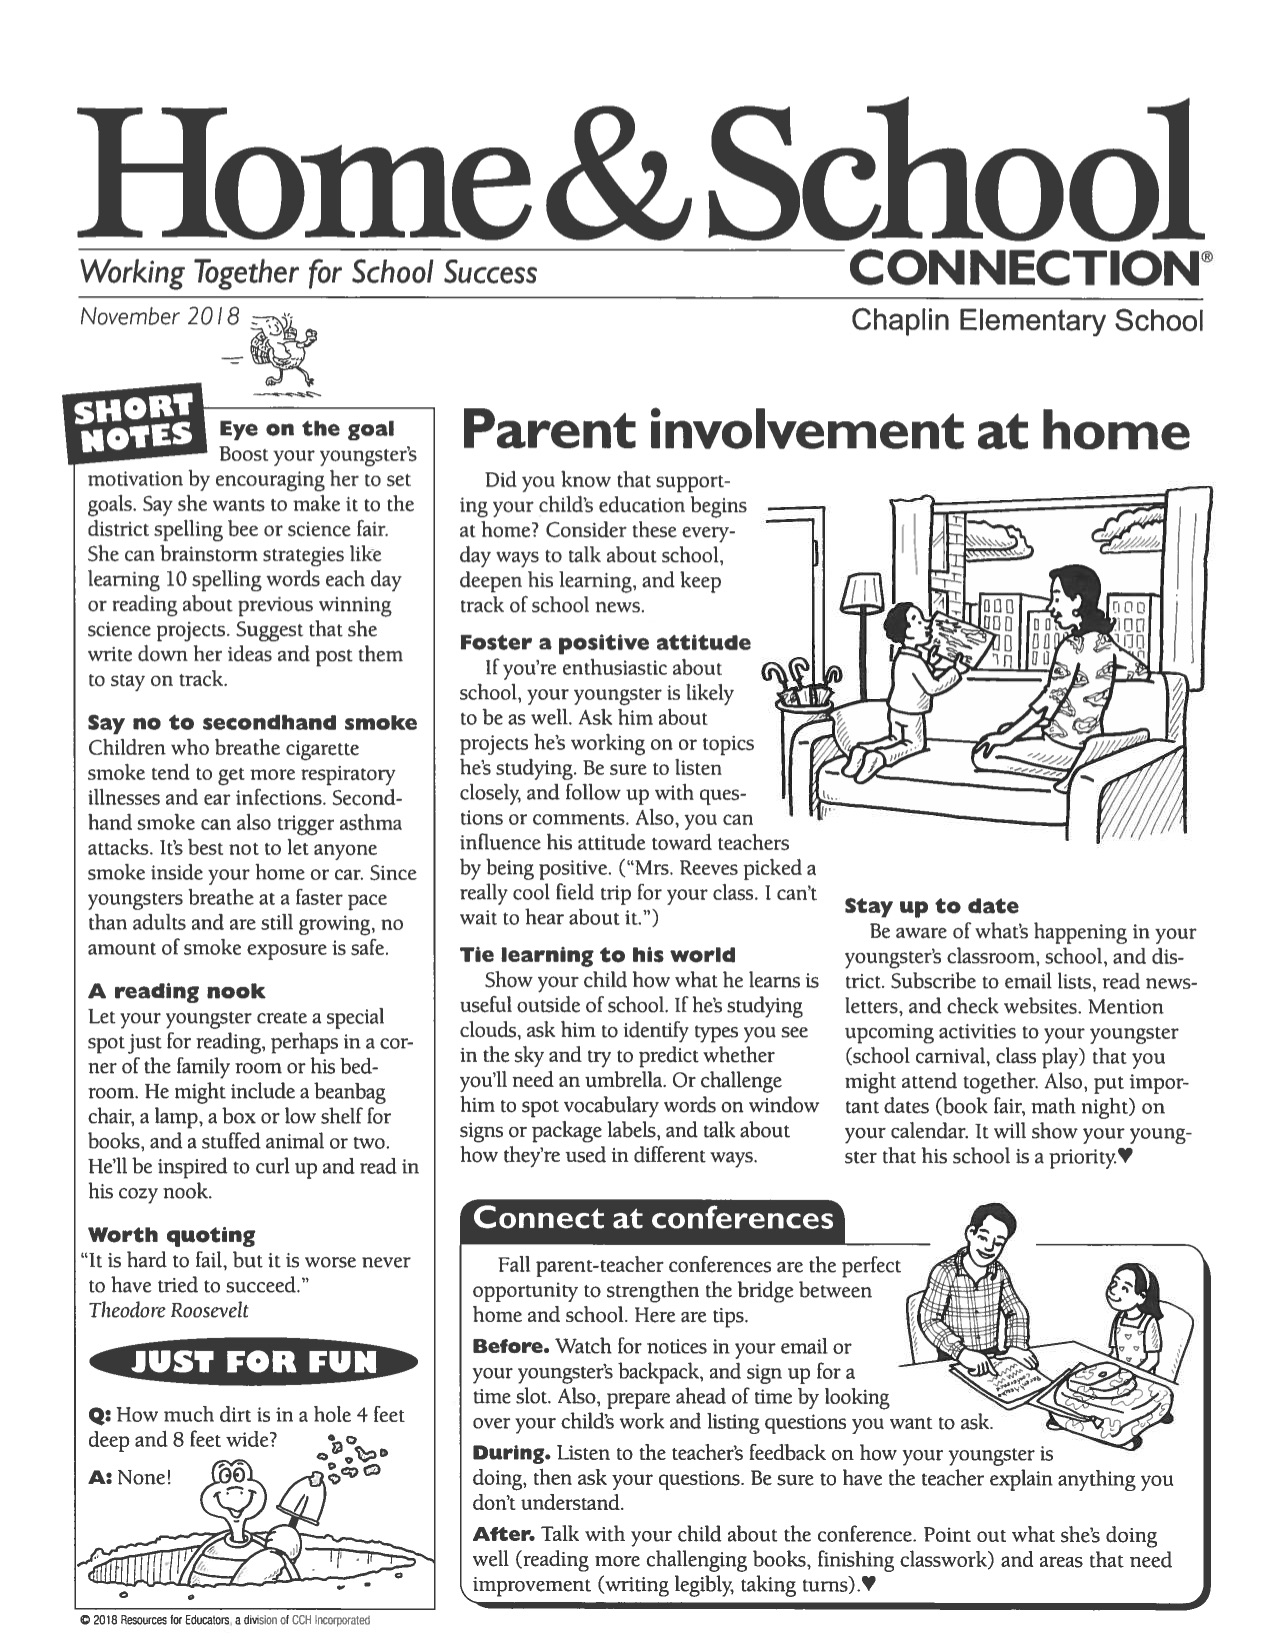 November, 2018 Home and School Connection